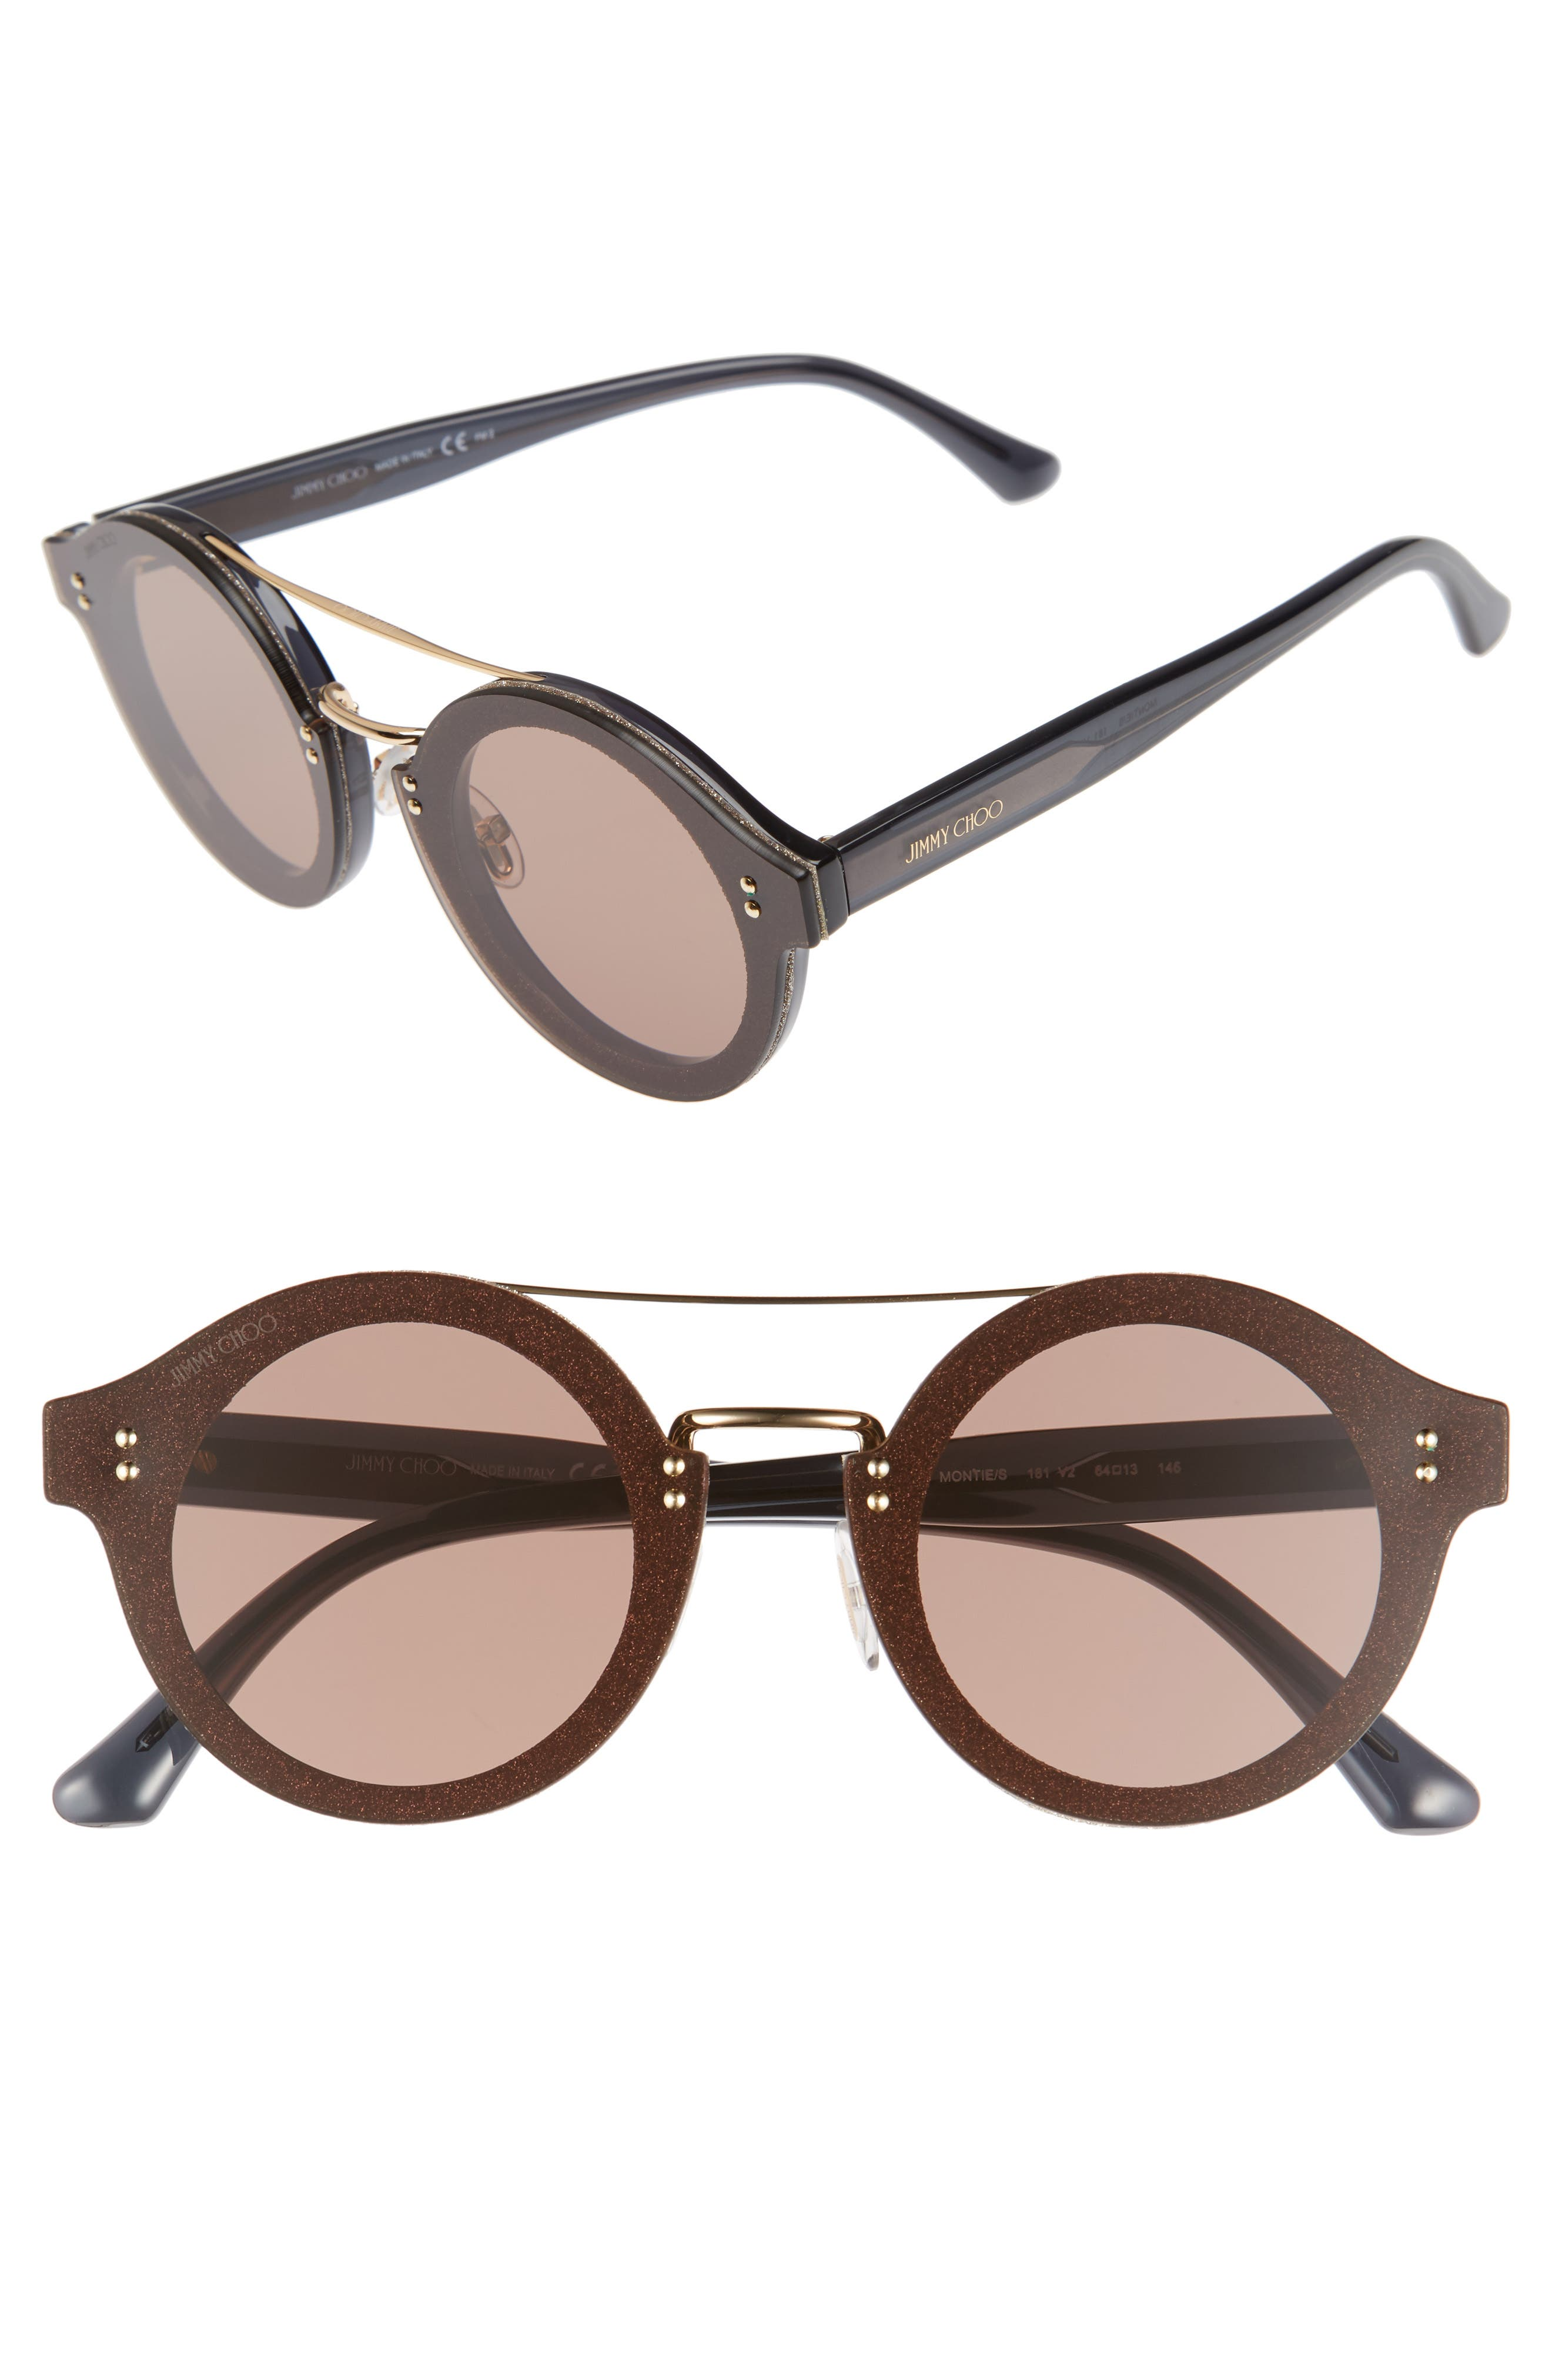 Main Image - Jimmy Choo Monties 64mm Round Sunglasses